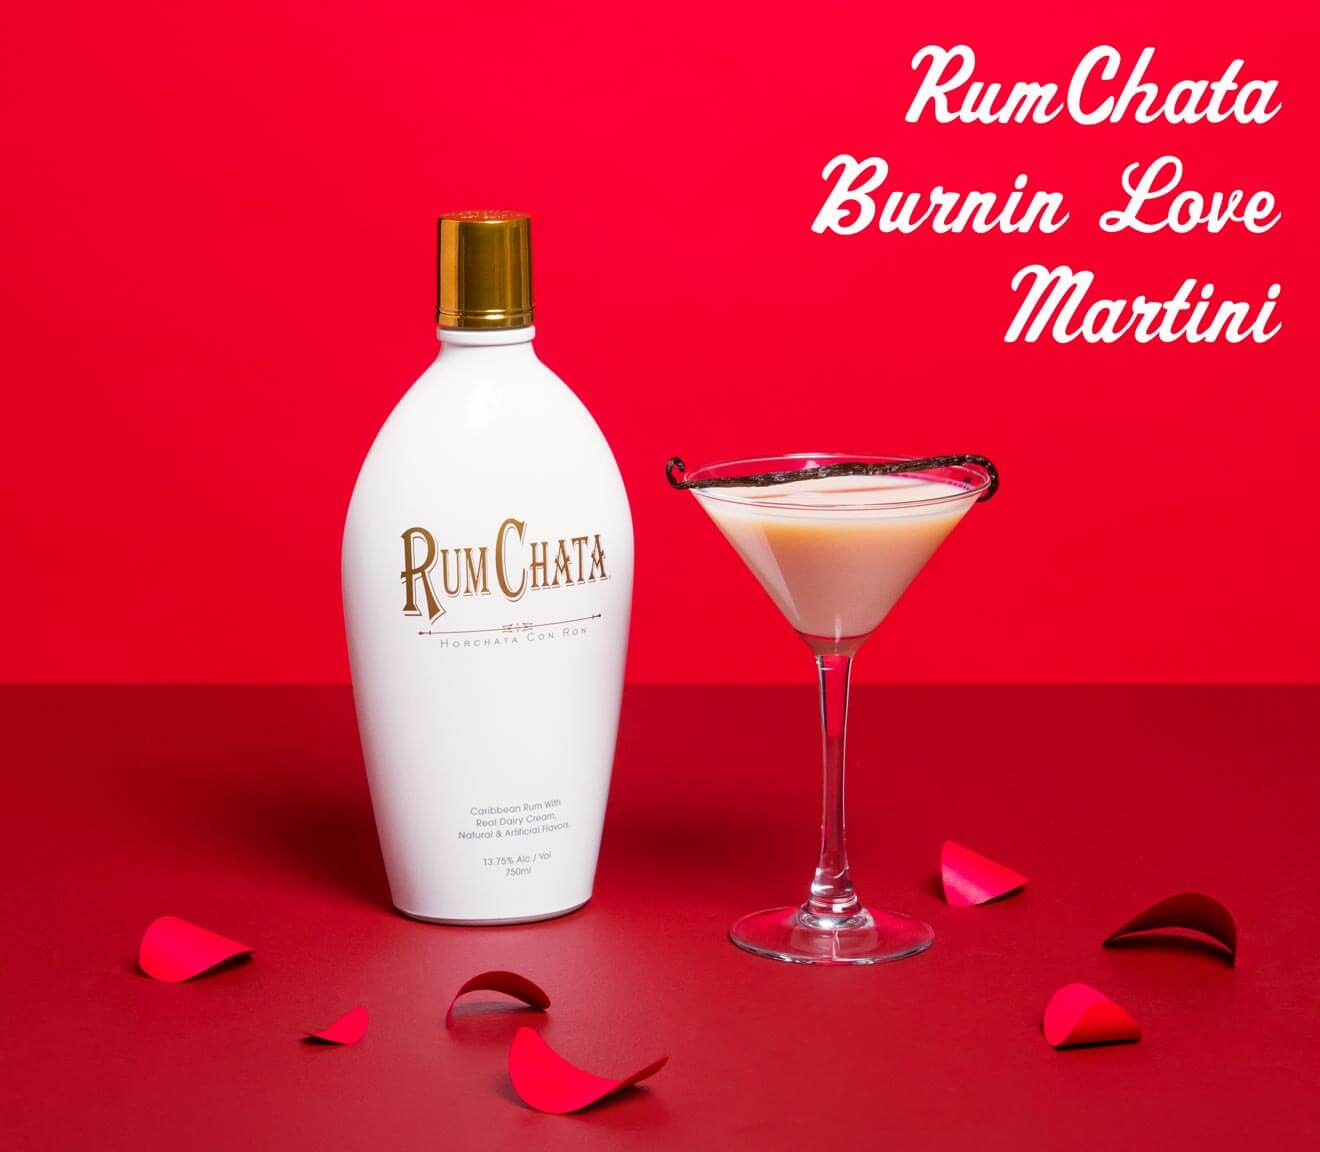 RumChata Burnin Love Martini, cocktails